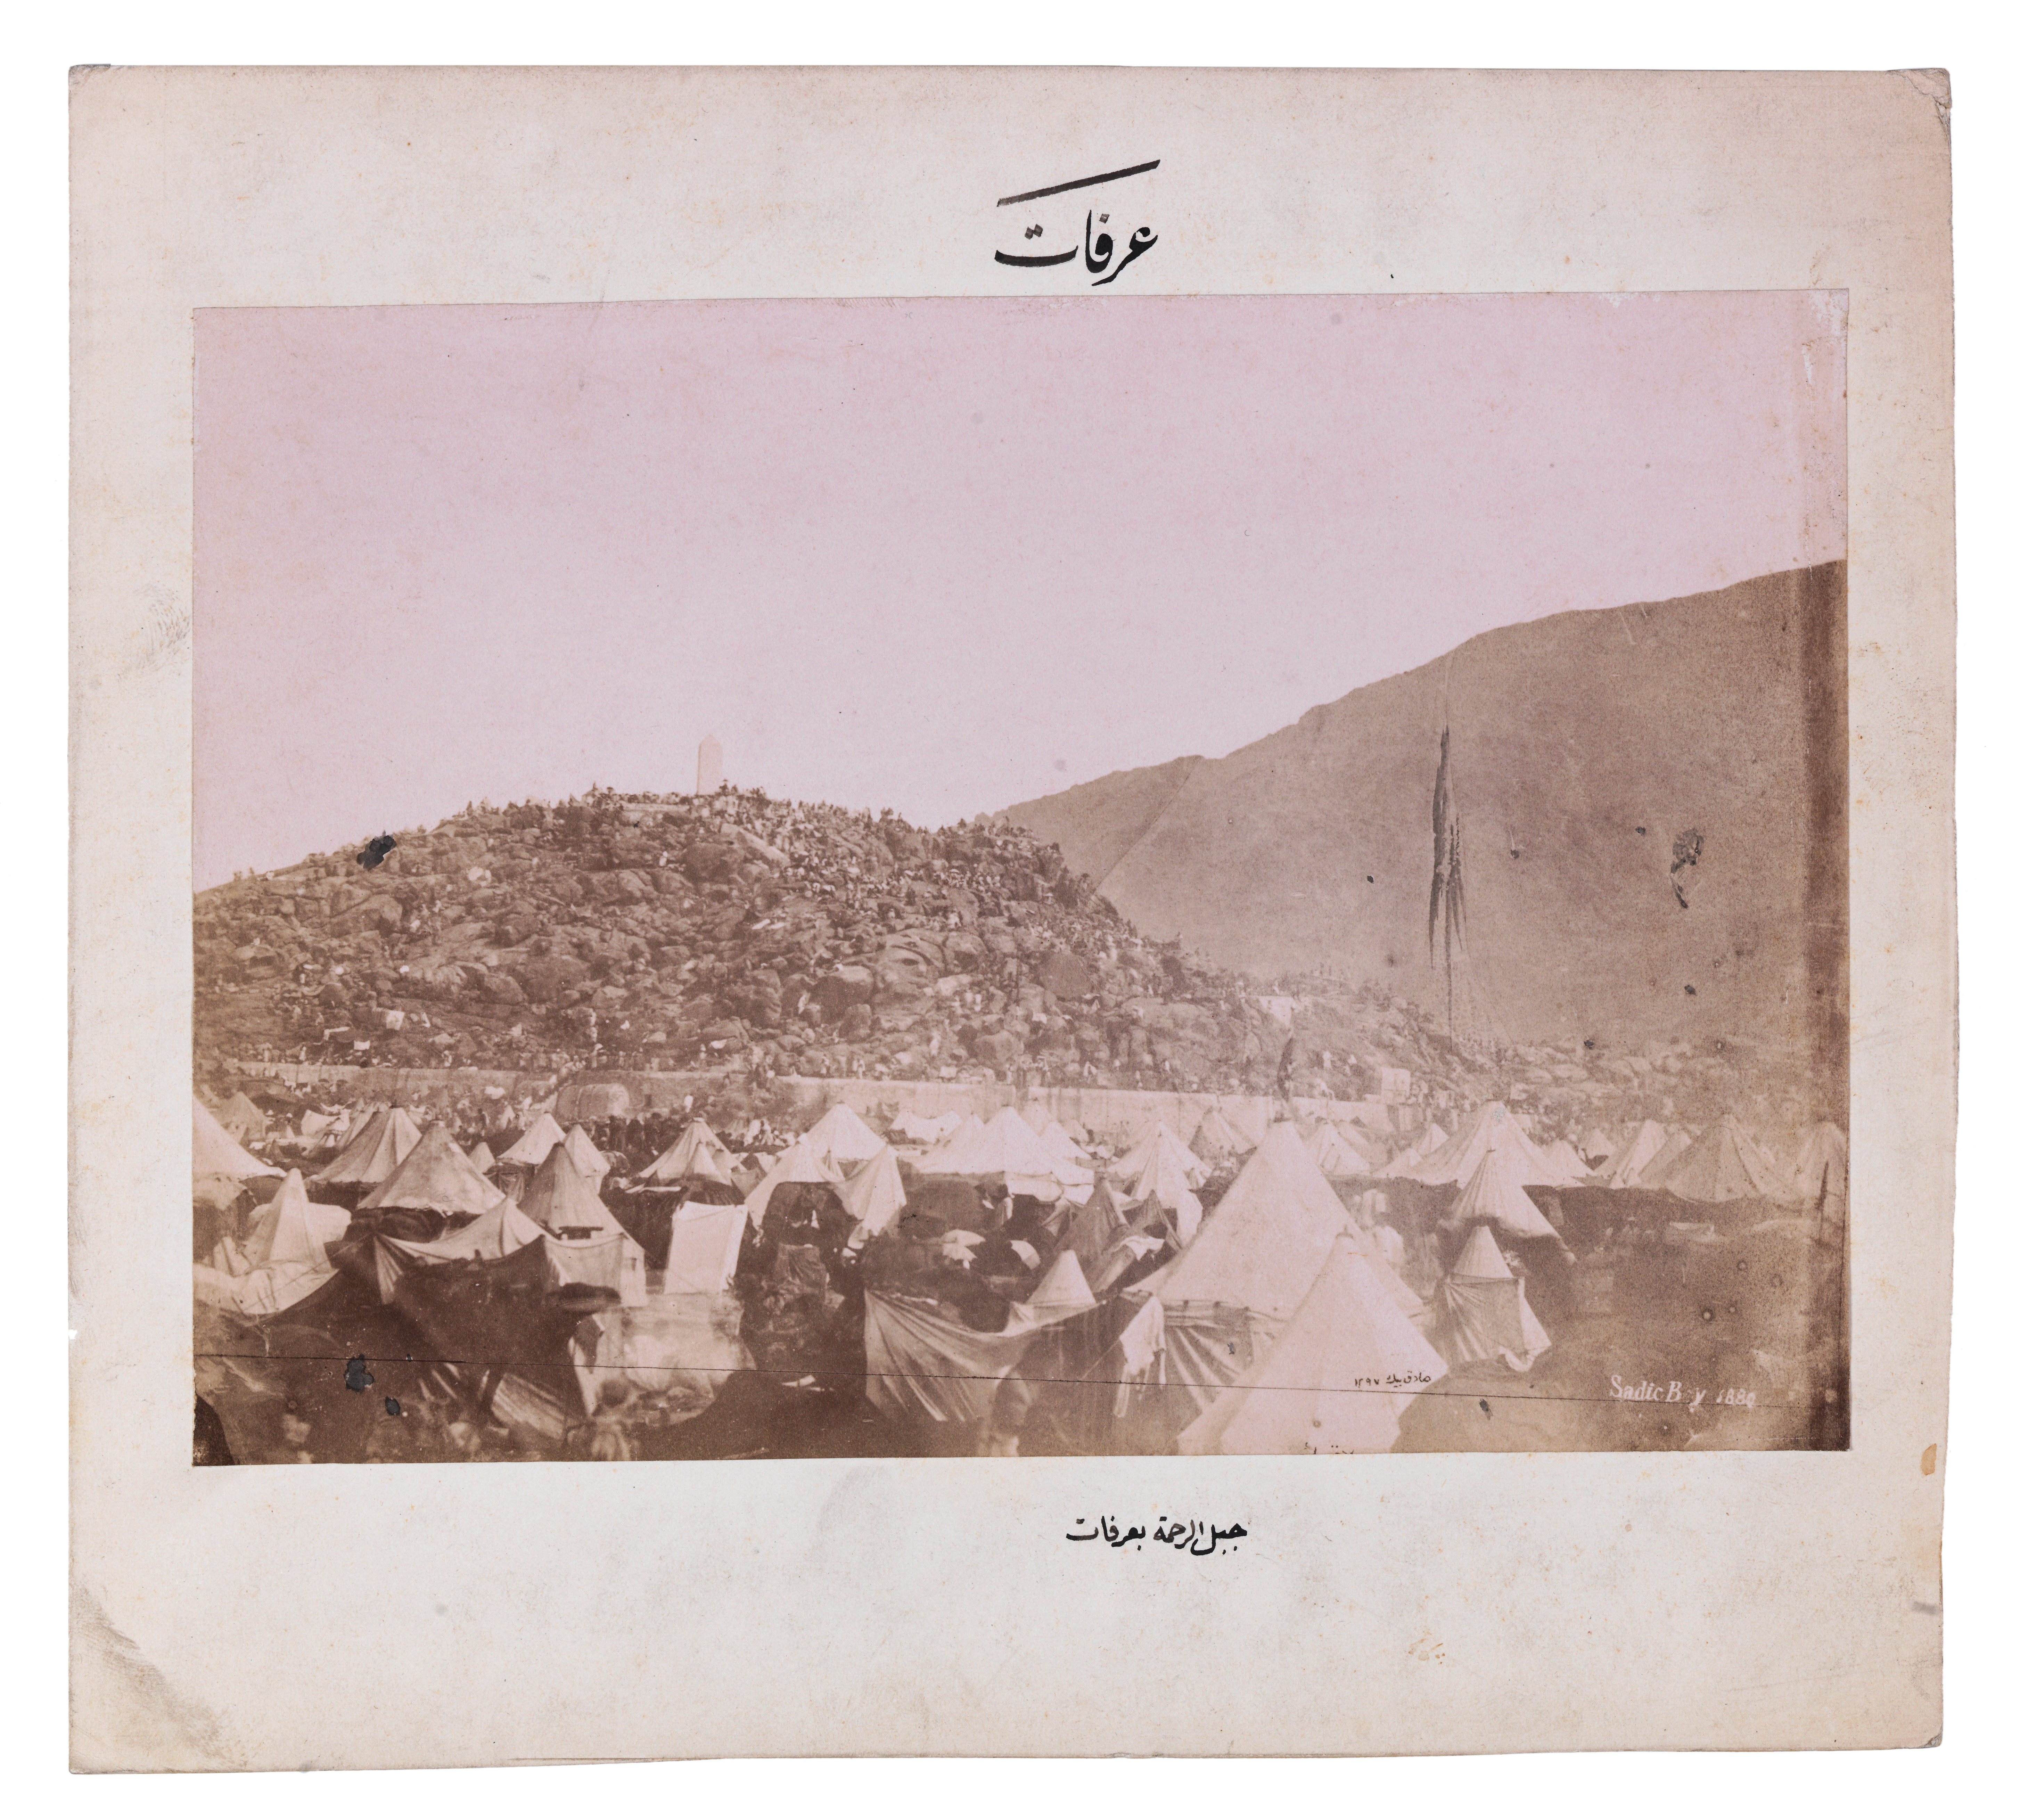 Pilgrims at 'Arafat by Sadiq Bey, the first photographer of Mecca and Medina